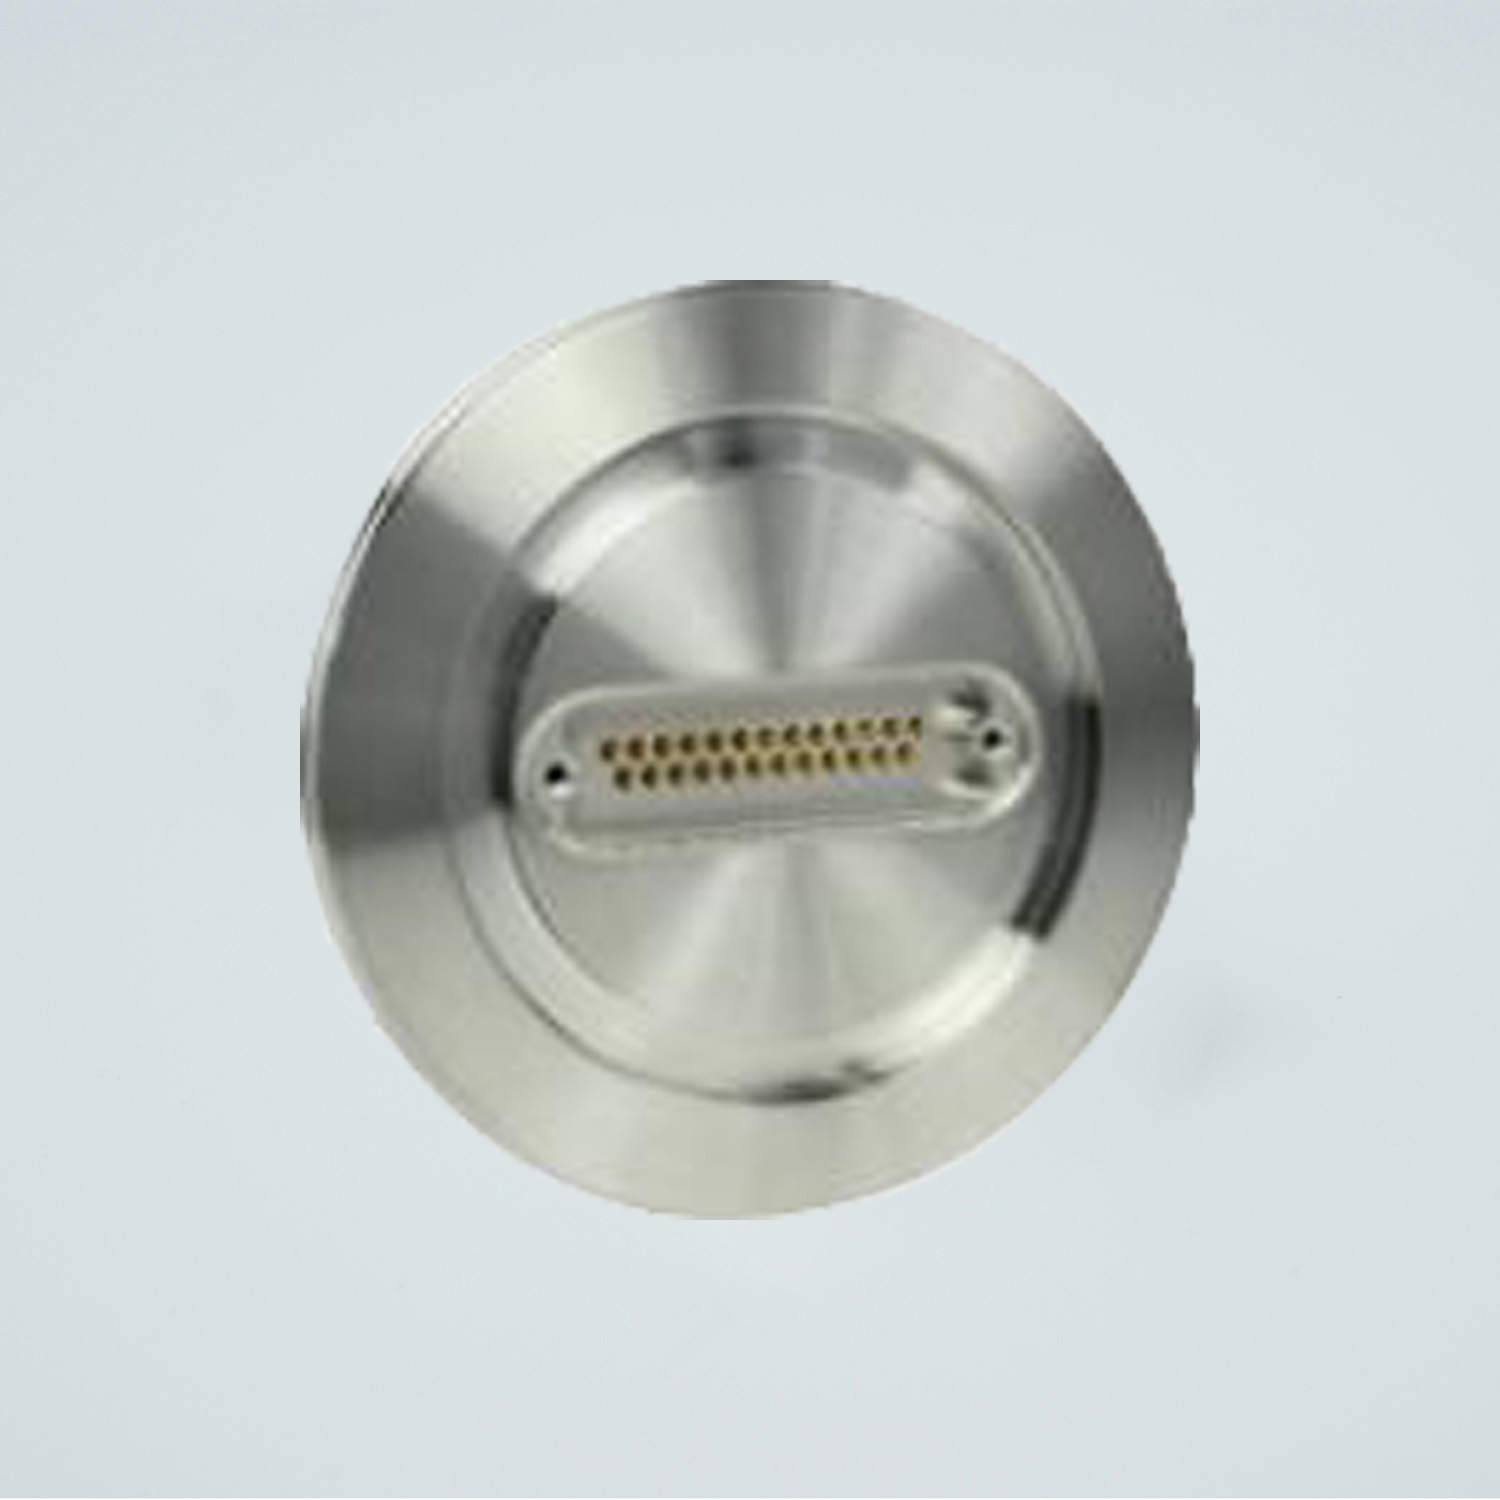 D-type subminiature feedthrough one-25-pin on DN63ISO flange